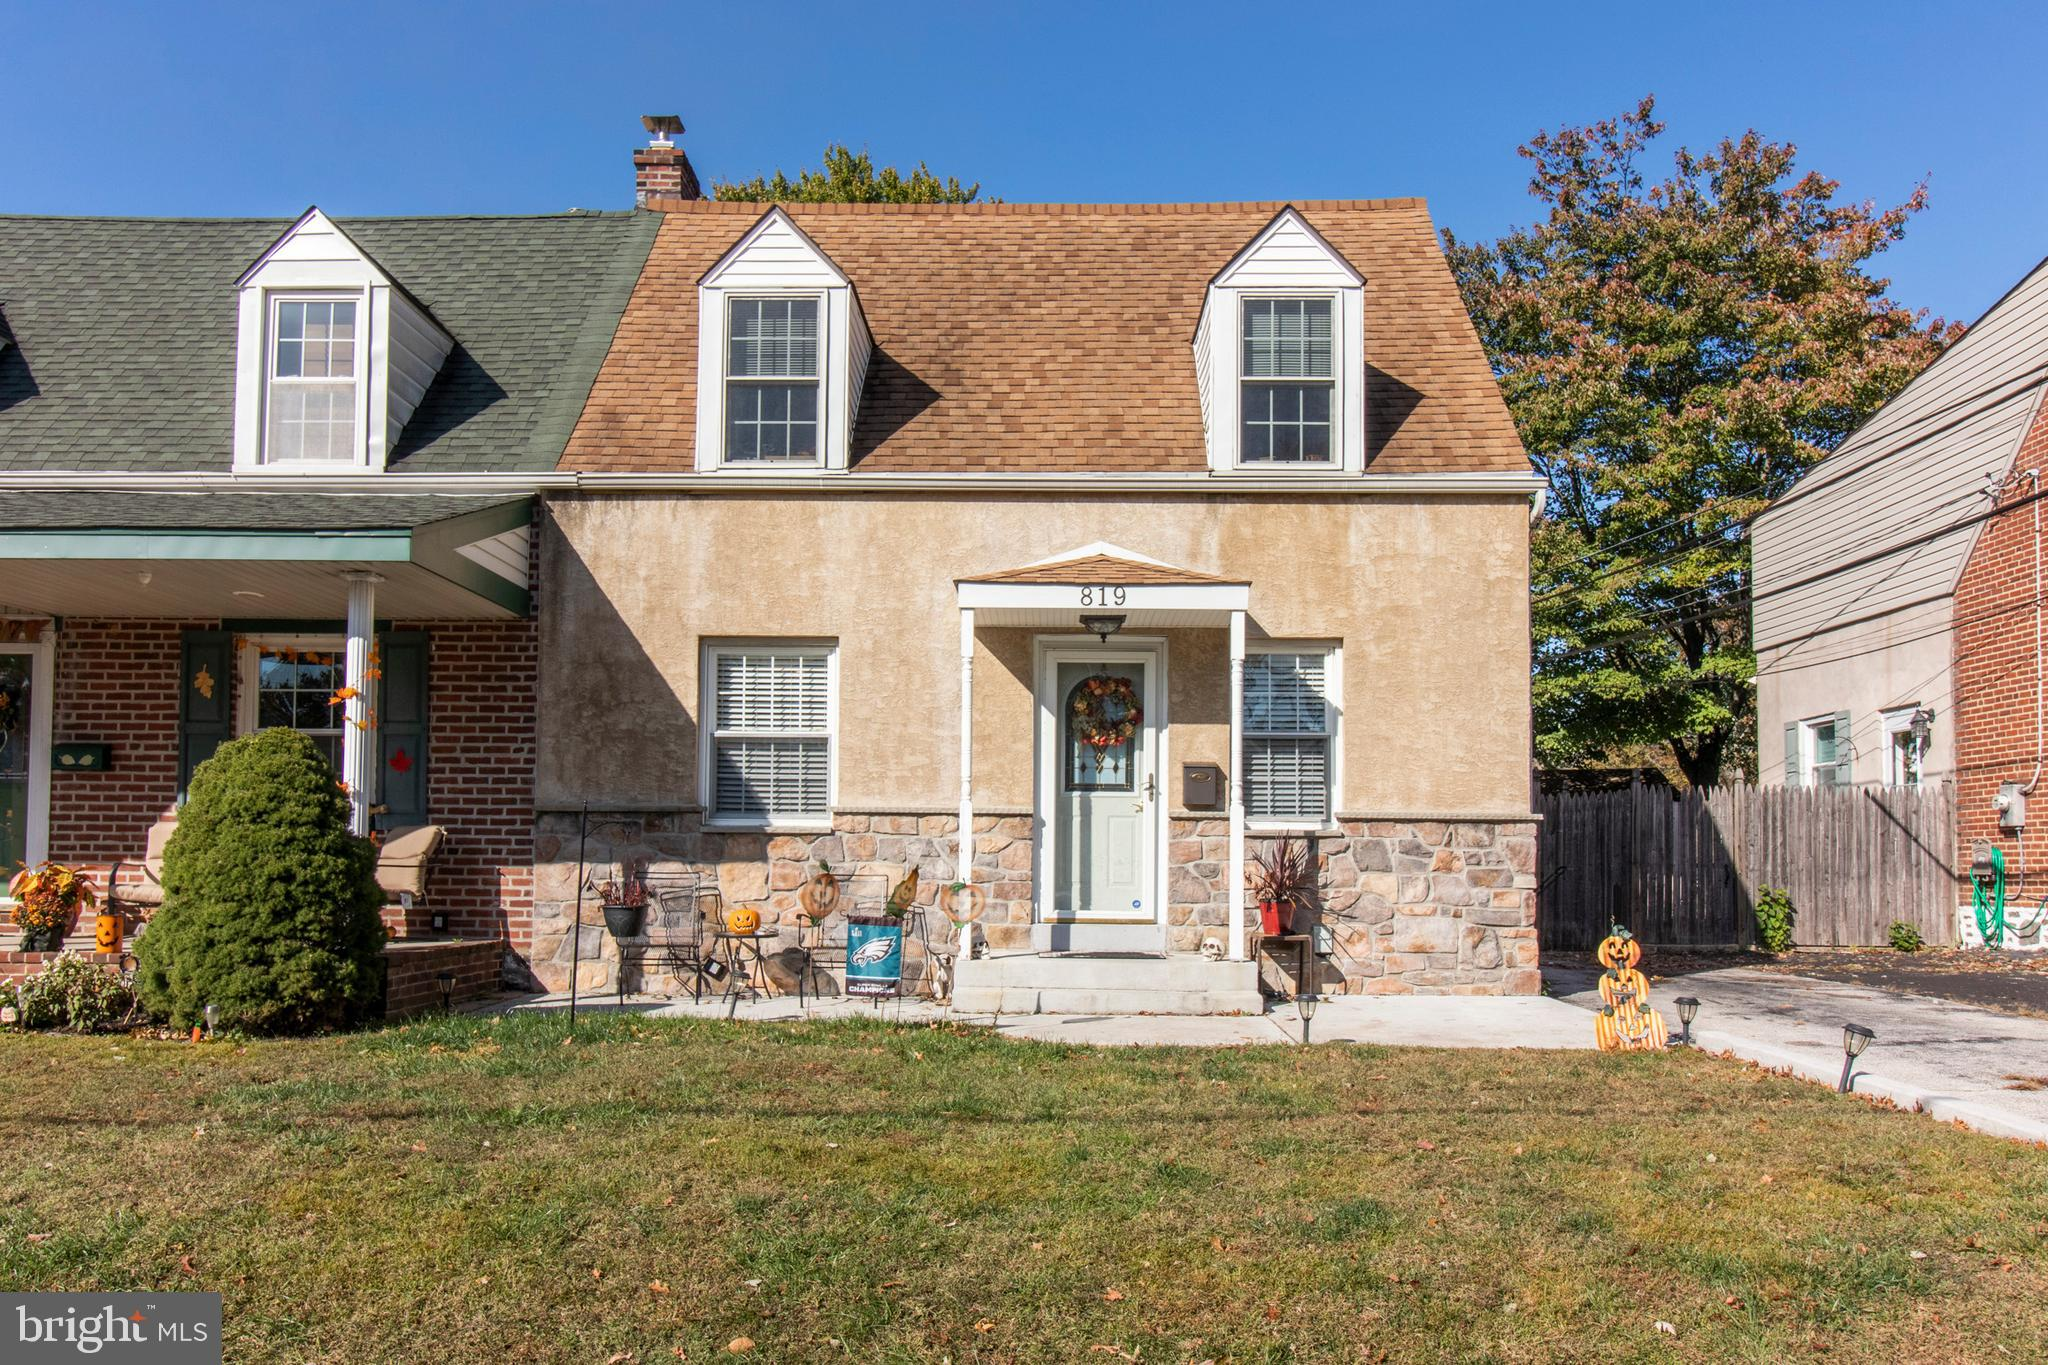 819 FAIRVIEW ROAD, SWARTHMORE, PA 19081